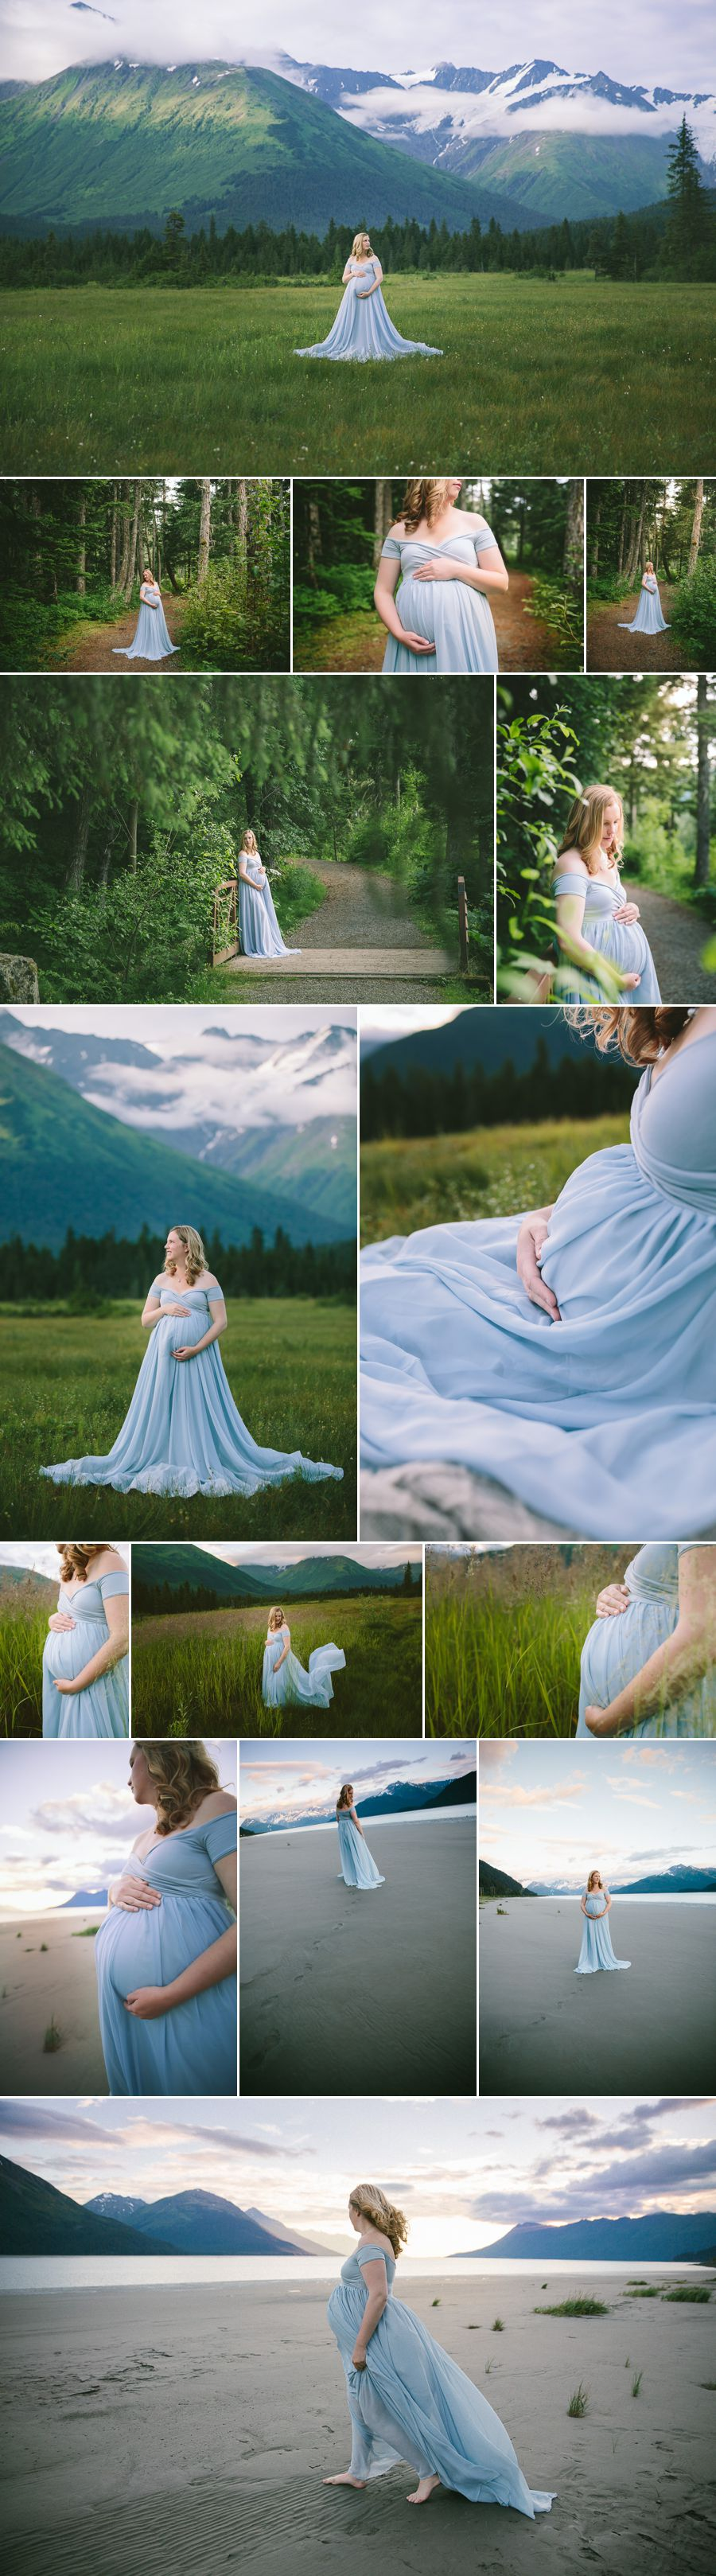 Alaska Pregnancy Photos with Mountains and Beach